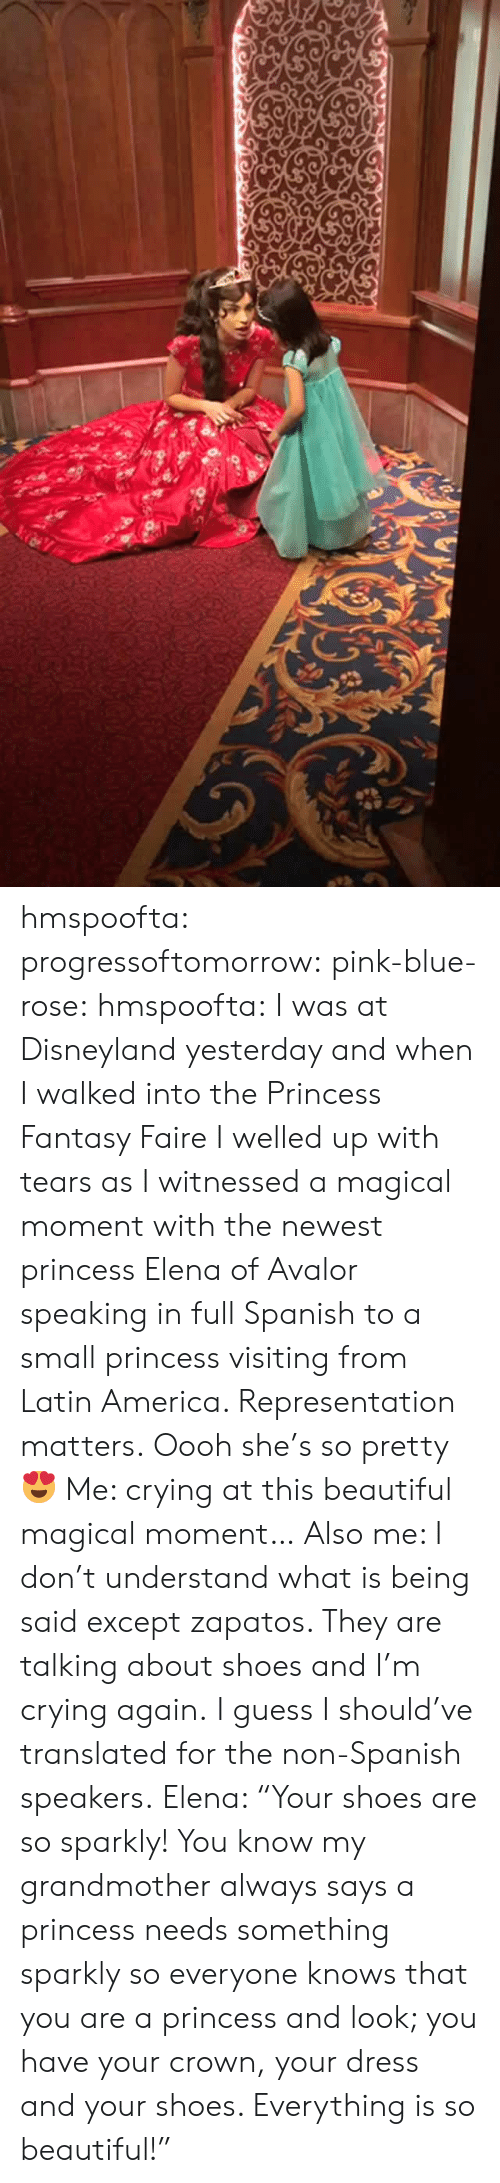 """America, Beautiful, and Crying: hmspoofta: progressoftomorrow:  pink-blue-rose:  hmspoofta:   I was at Disneyland yesterday and when I walked into the Princess Fantasy Faire I welled up with tears as I  witnessed a magical moment with the newest princess Elena of Avalor speaking in full Spanish to a small princess visiting from Latin America.   Representation matters.   Oooh she's so pretty 😍  Me: crying at this beautiful magical moment… Also me: I don't understand what is being said except zapatos. They are talking about shoes and I'm crying again.  I guess I should've translated for the non-Spanish speakers.  Elena: """"Your shoes are so sparkly! You know my grandmother always says a princess needs something sparkly so everyone knows that you are a princess and look; you have your crown, your dress and your shoes. Everything is so beautiful!"""""""